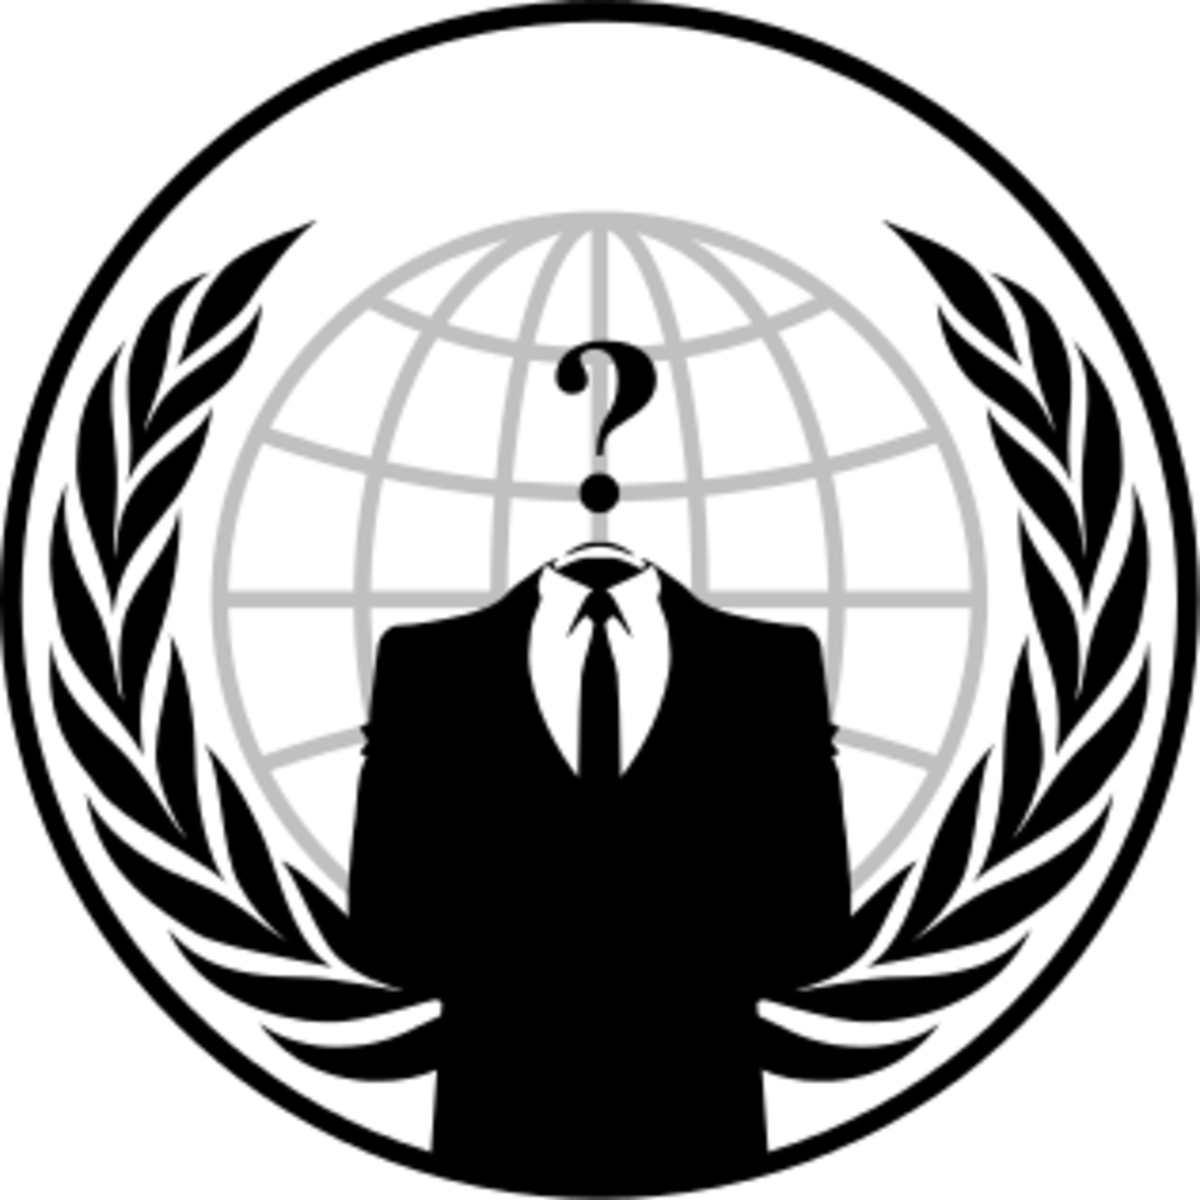 The logo for the Anonymous hacking collective.